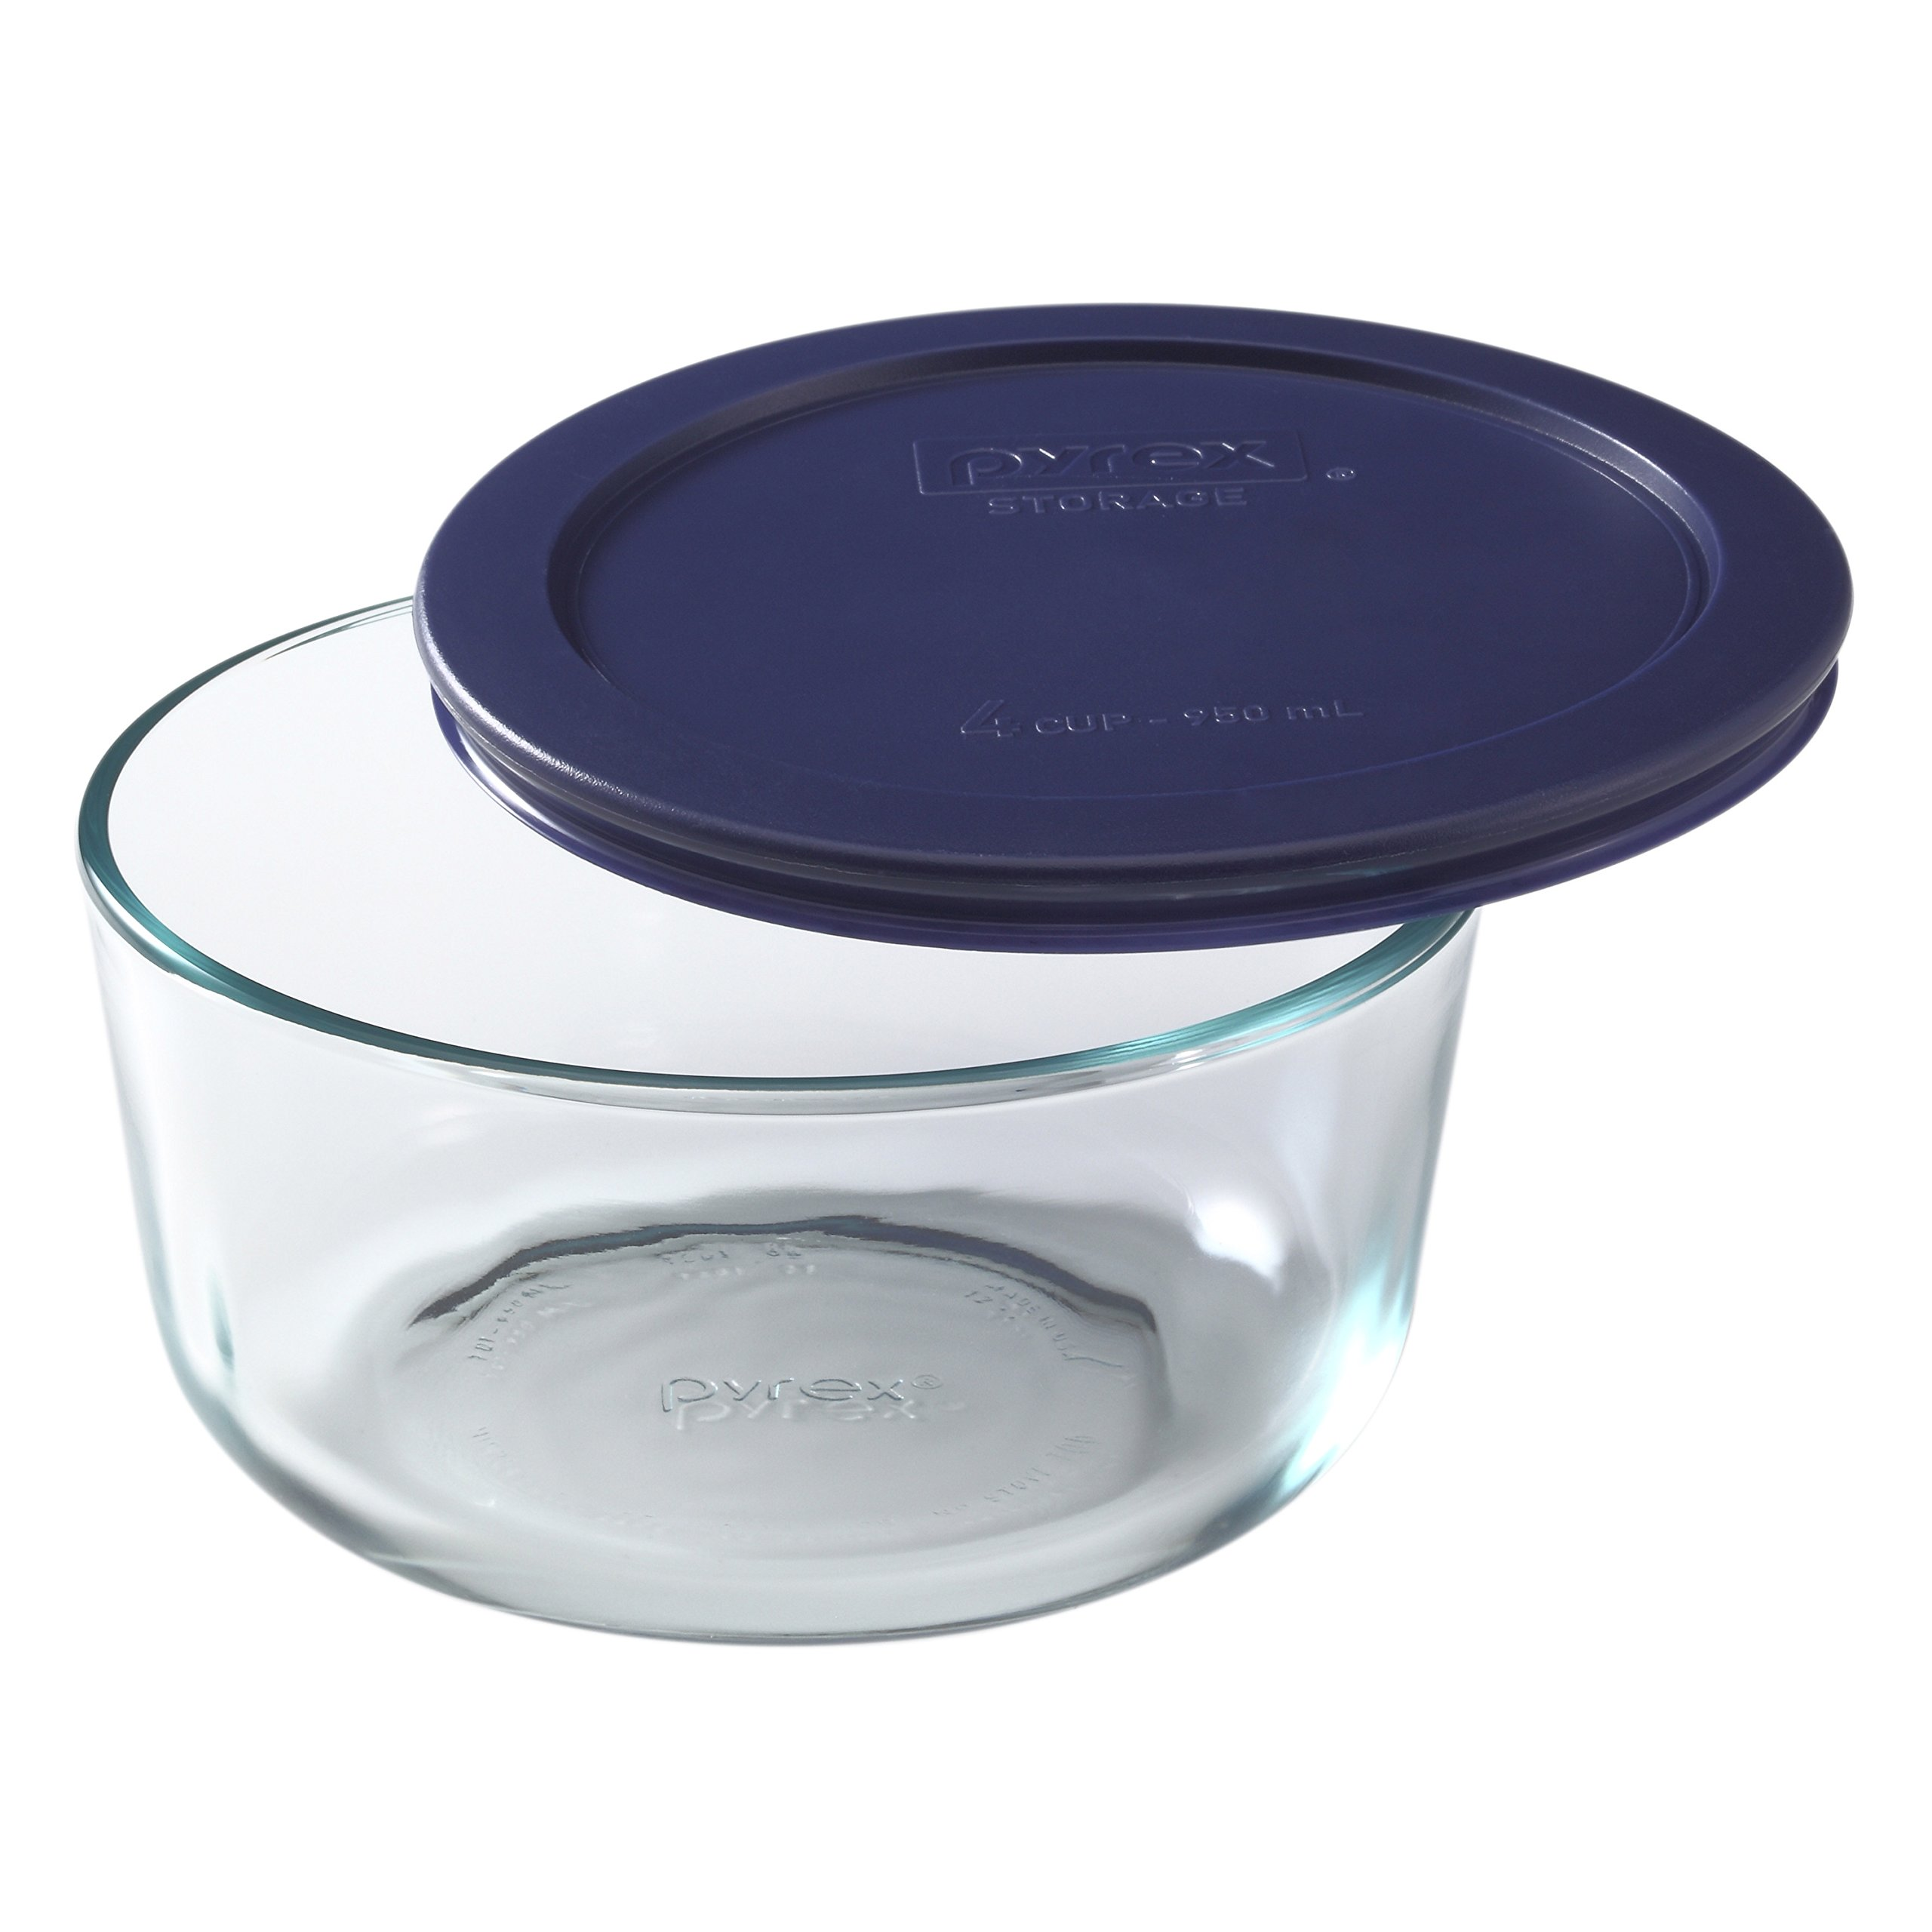 Pyrex Simply Store Glass Food Container Set with Blue Lids (10-Piece) by Pyrex (Image #3)